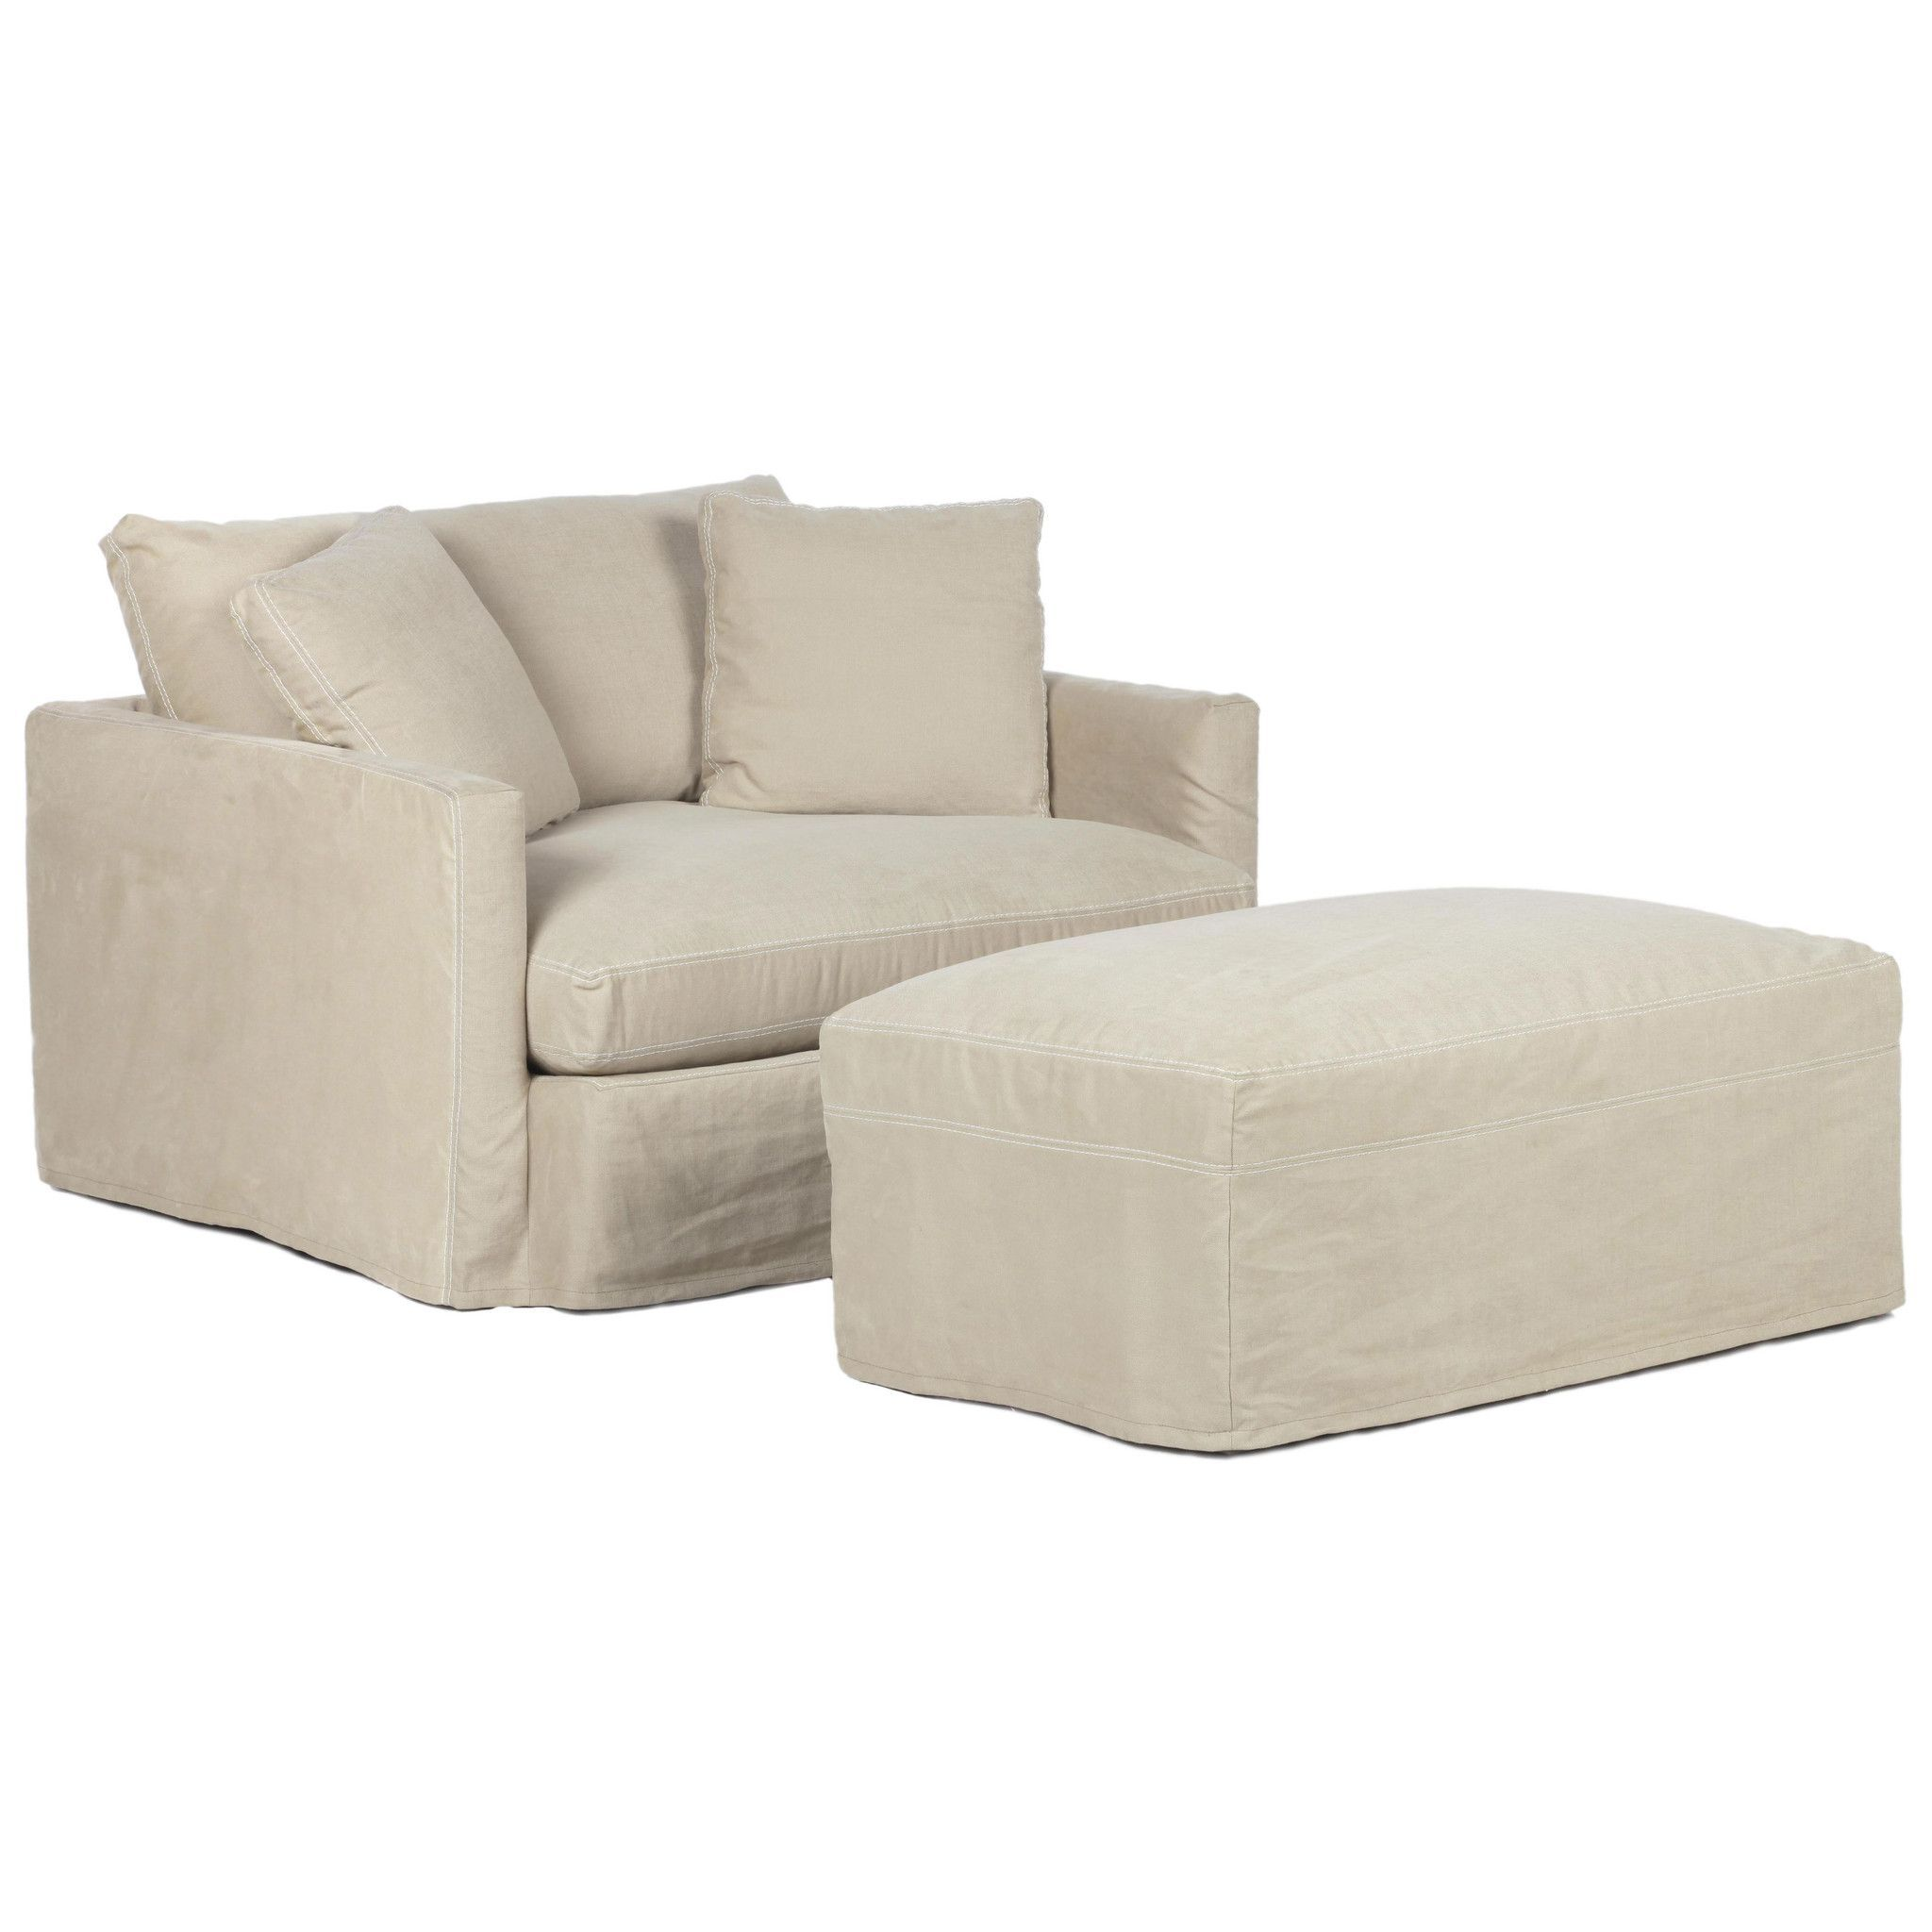 Hue slipcovered chair and half slipcovers for chairs